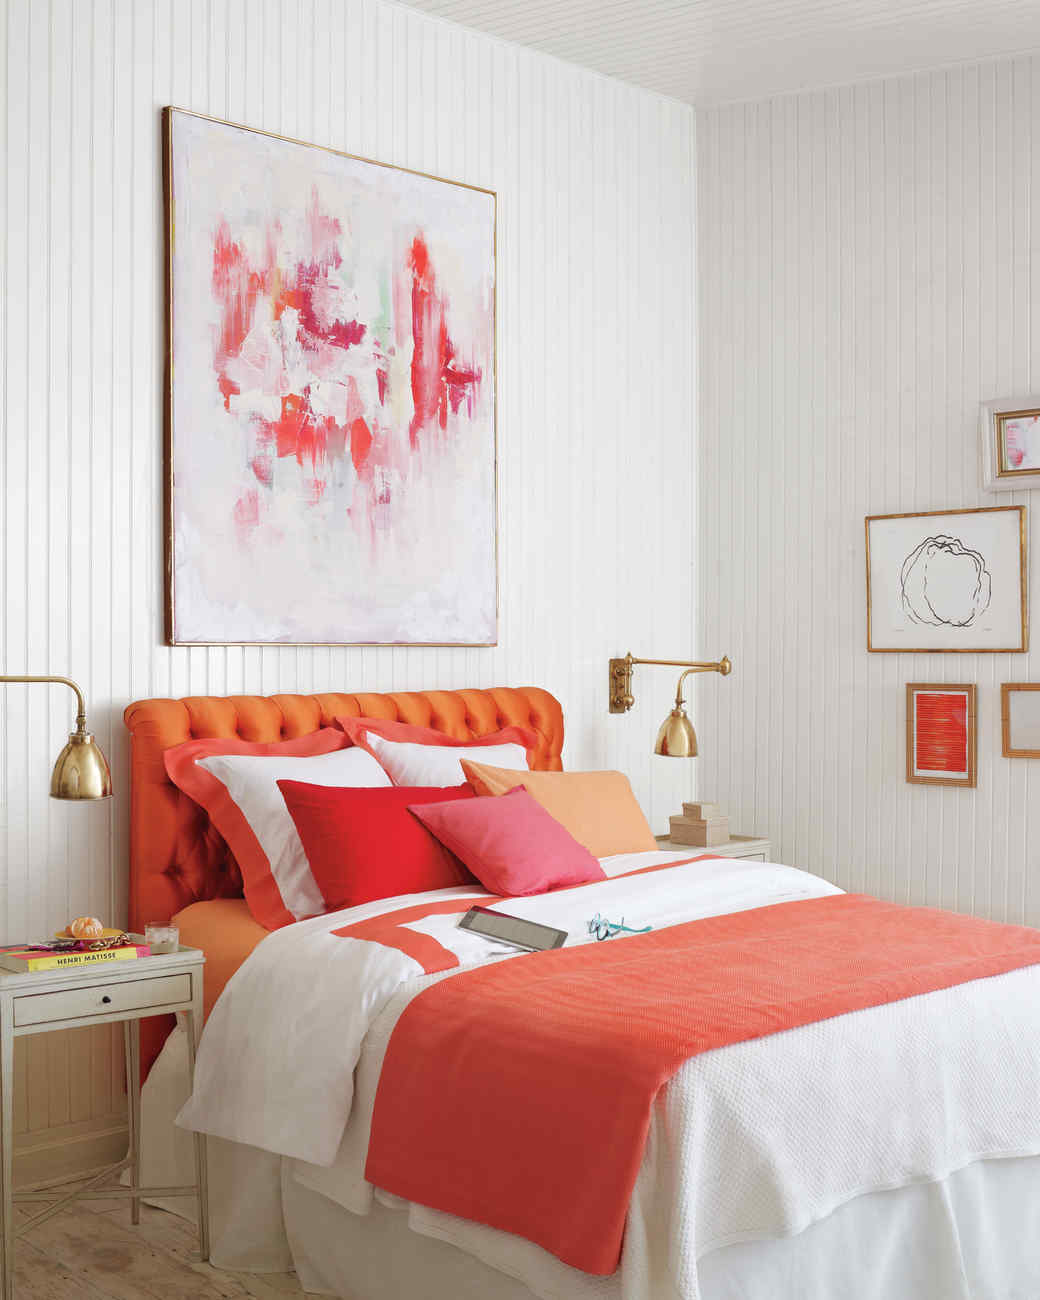 Home Design Color Ideas: Color-Blocking Decorating Ideas